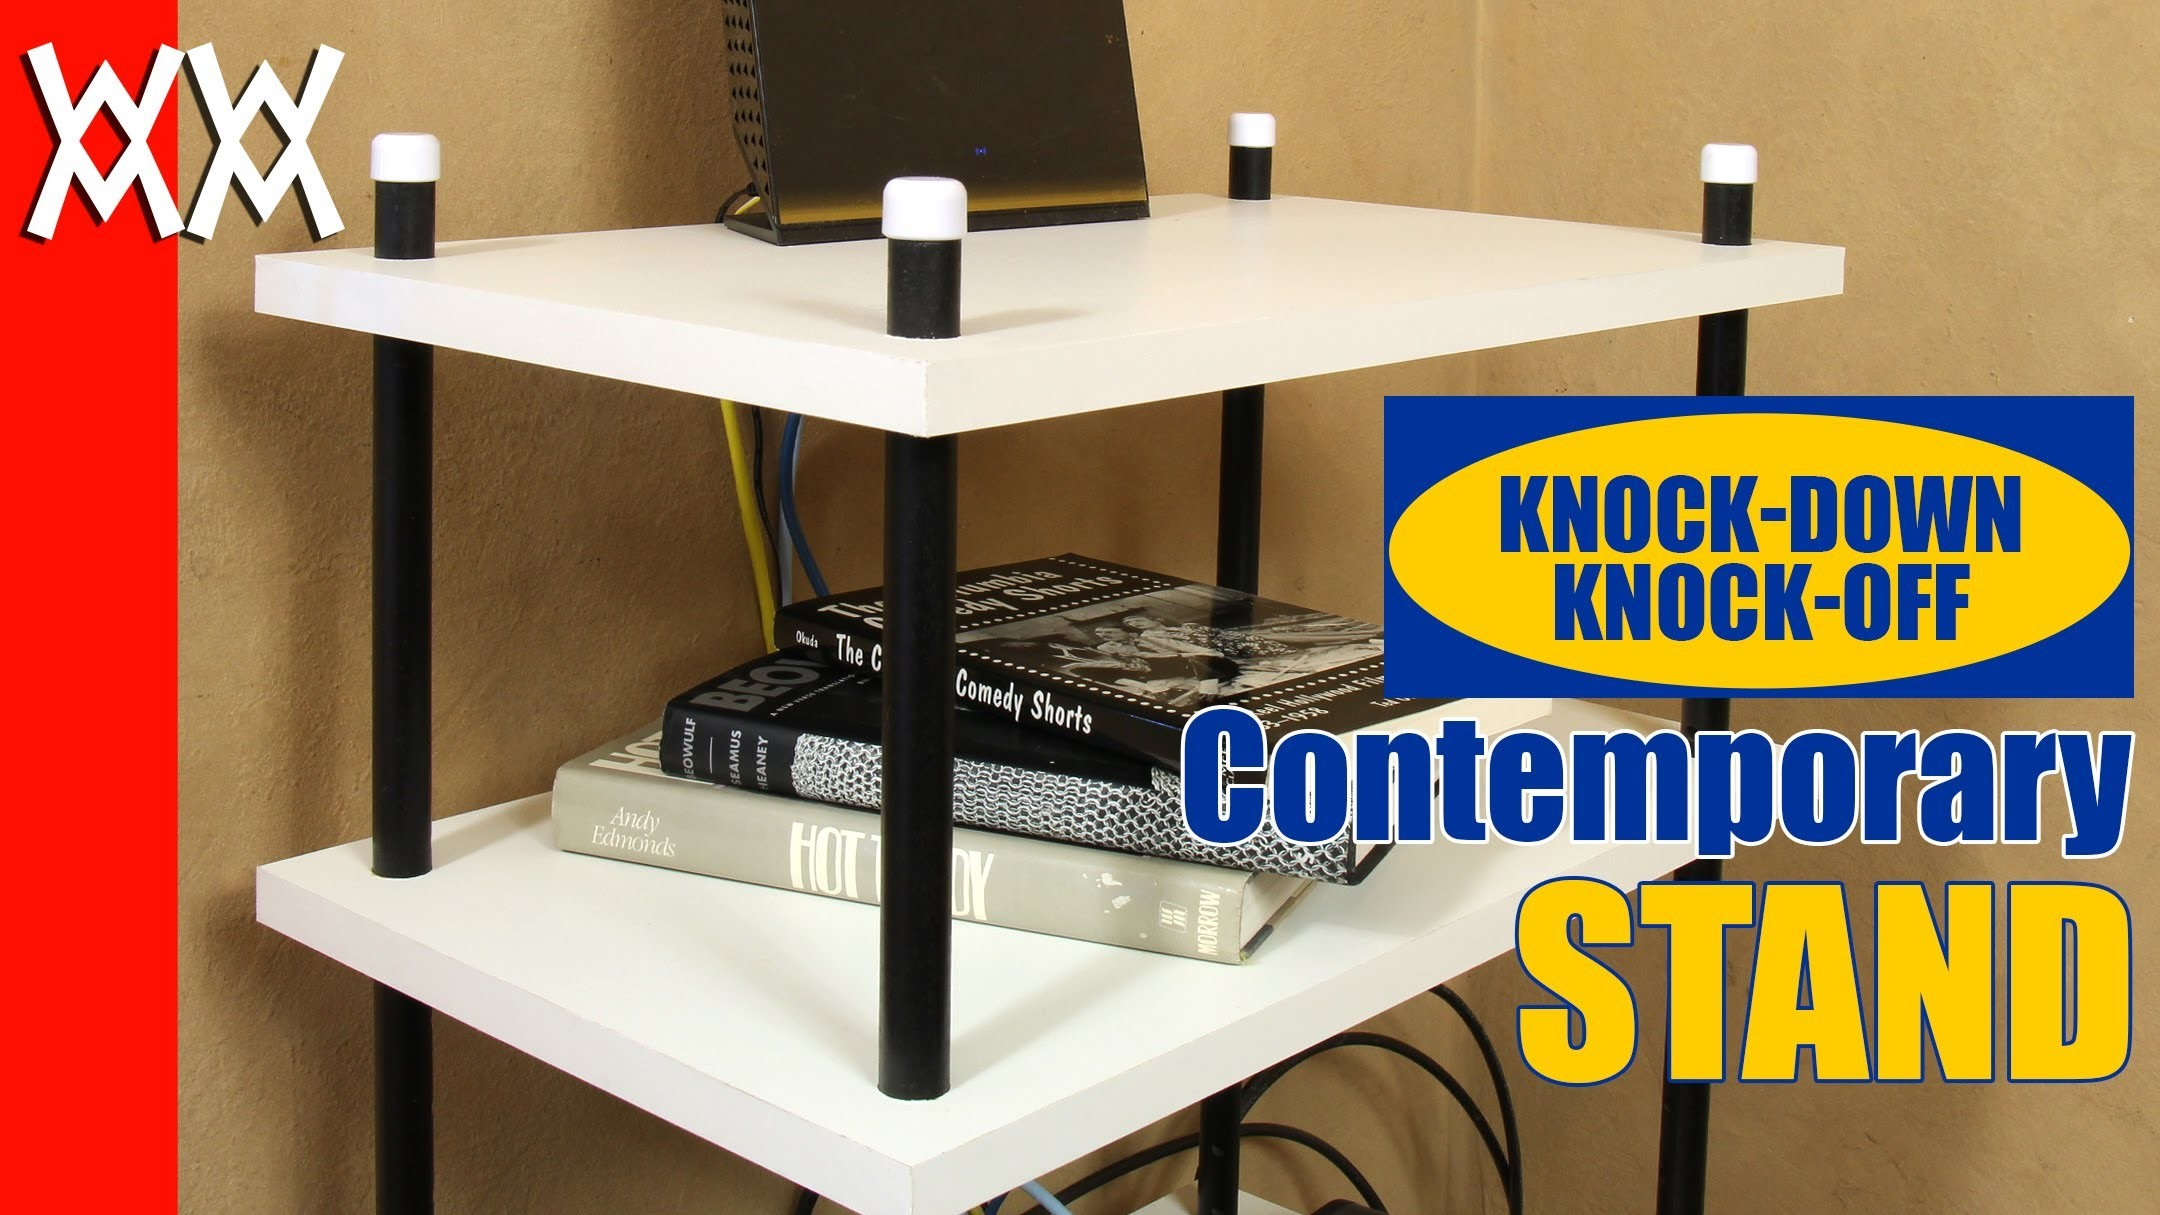 Contemporary, adjustable stand. Build your own stylish bookcase and save money.